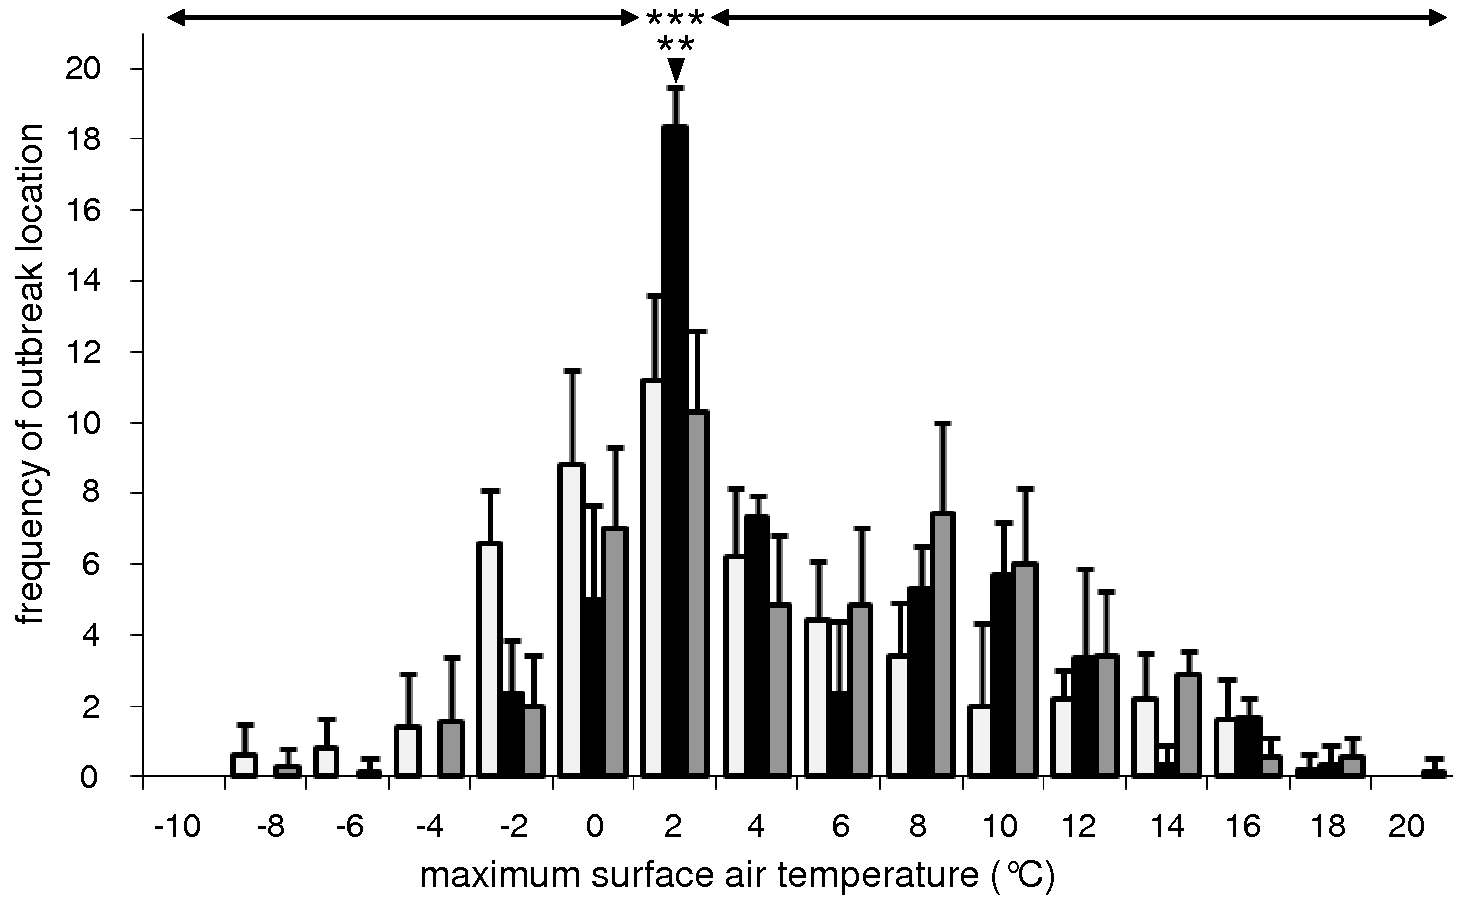 Significant association of outbreaks of highly pathogenic avian influenza virus (HPAIV) H5N1 infection in wild birds with maximum surface air temperatures of 0°C–2°C.